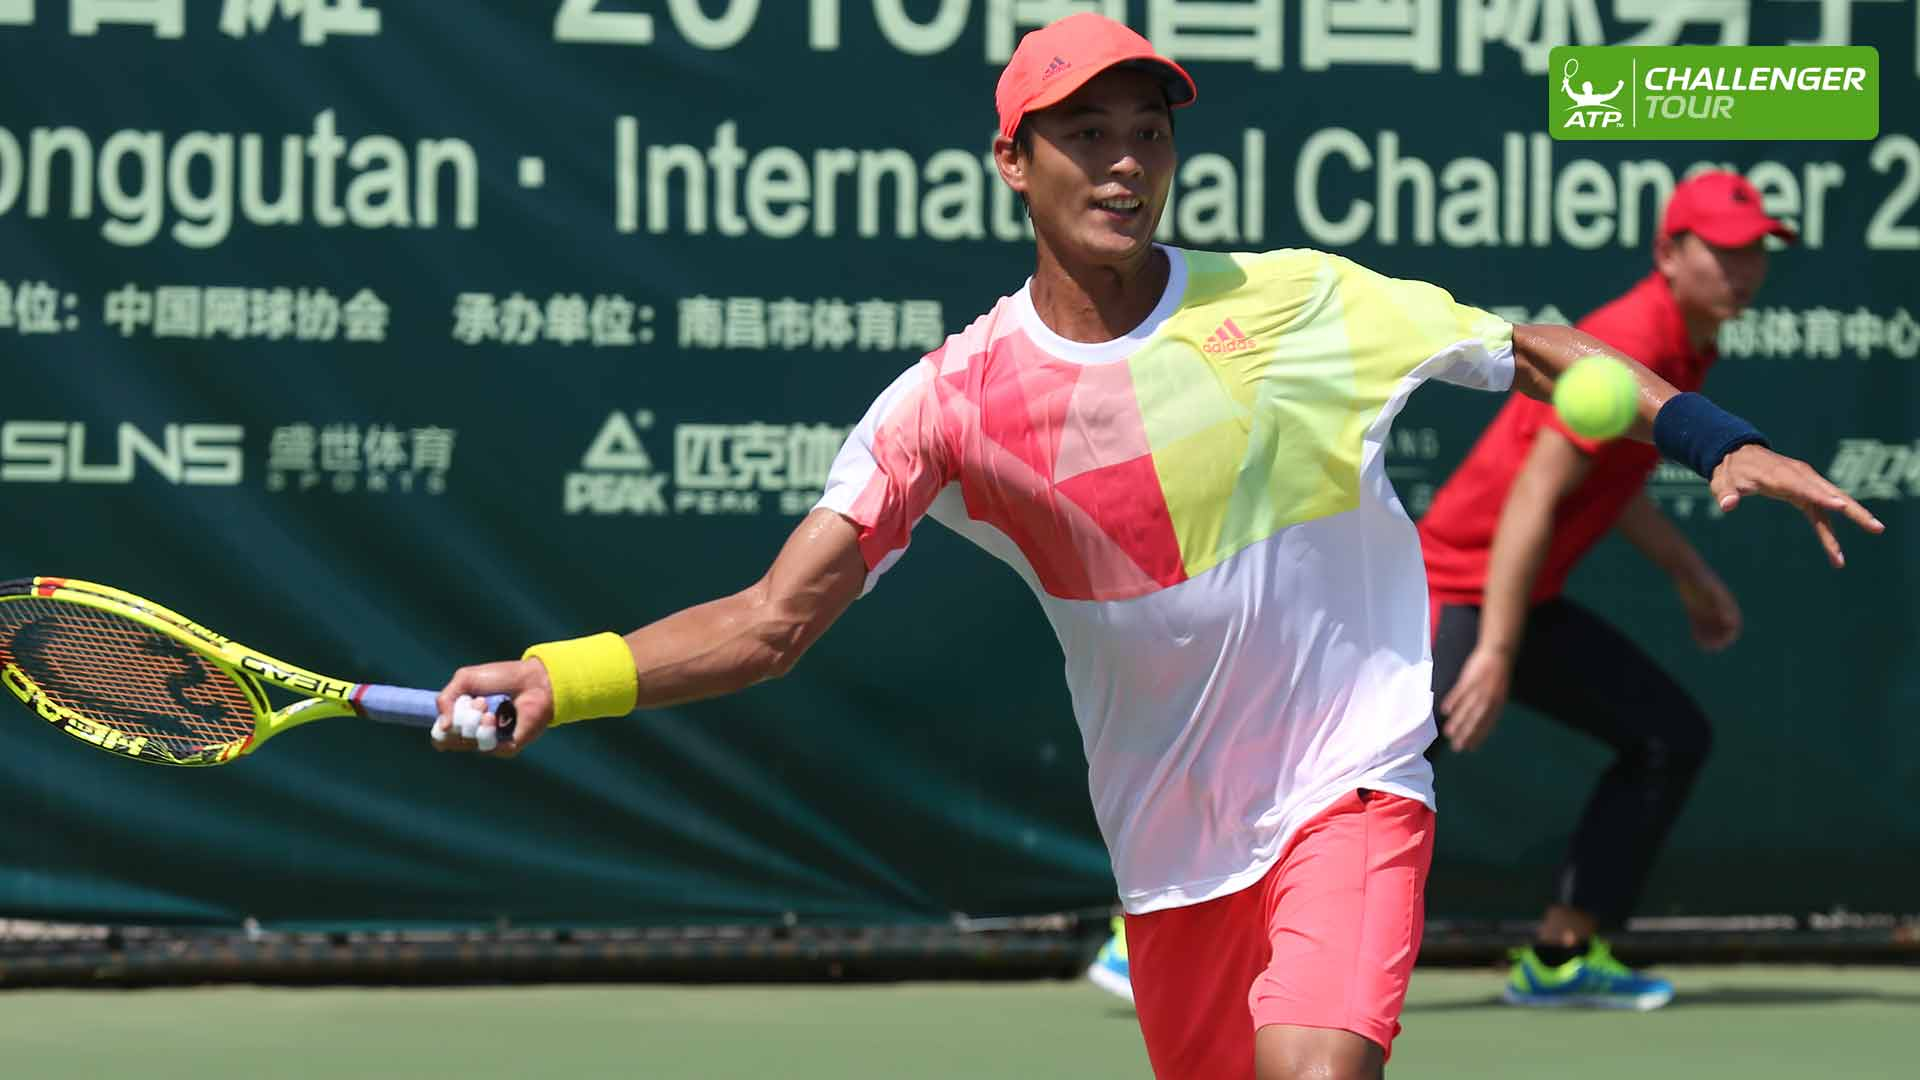 Yen-Hsun Lu looks for another ATP Challenger Tour title in Kaohsiung.